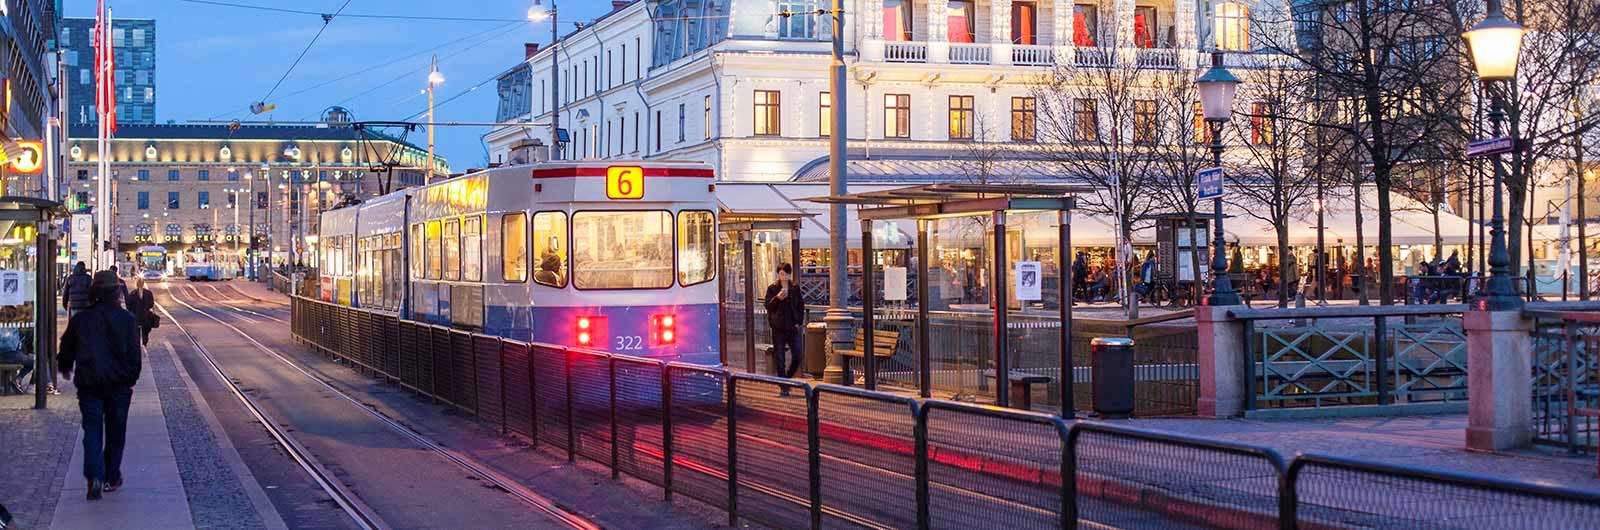 Tram and Gothenburg city at night